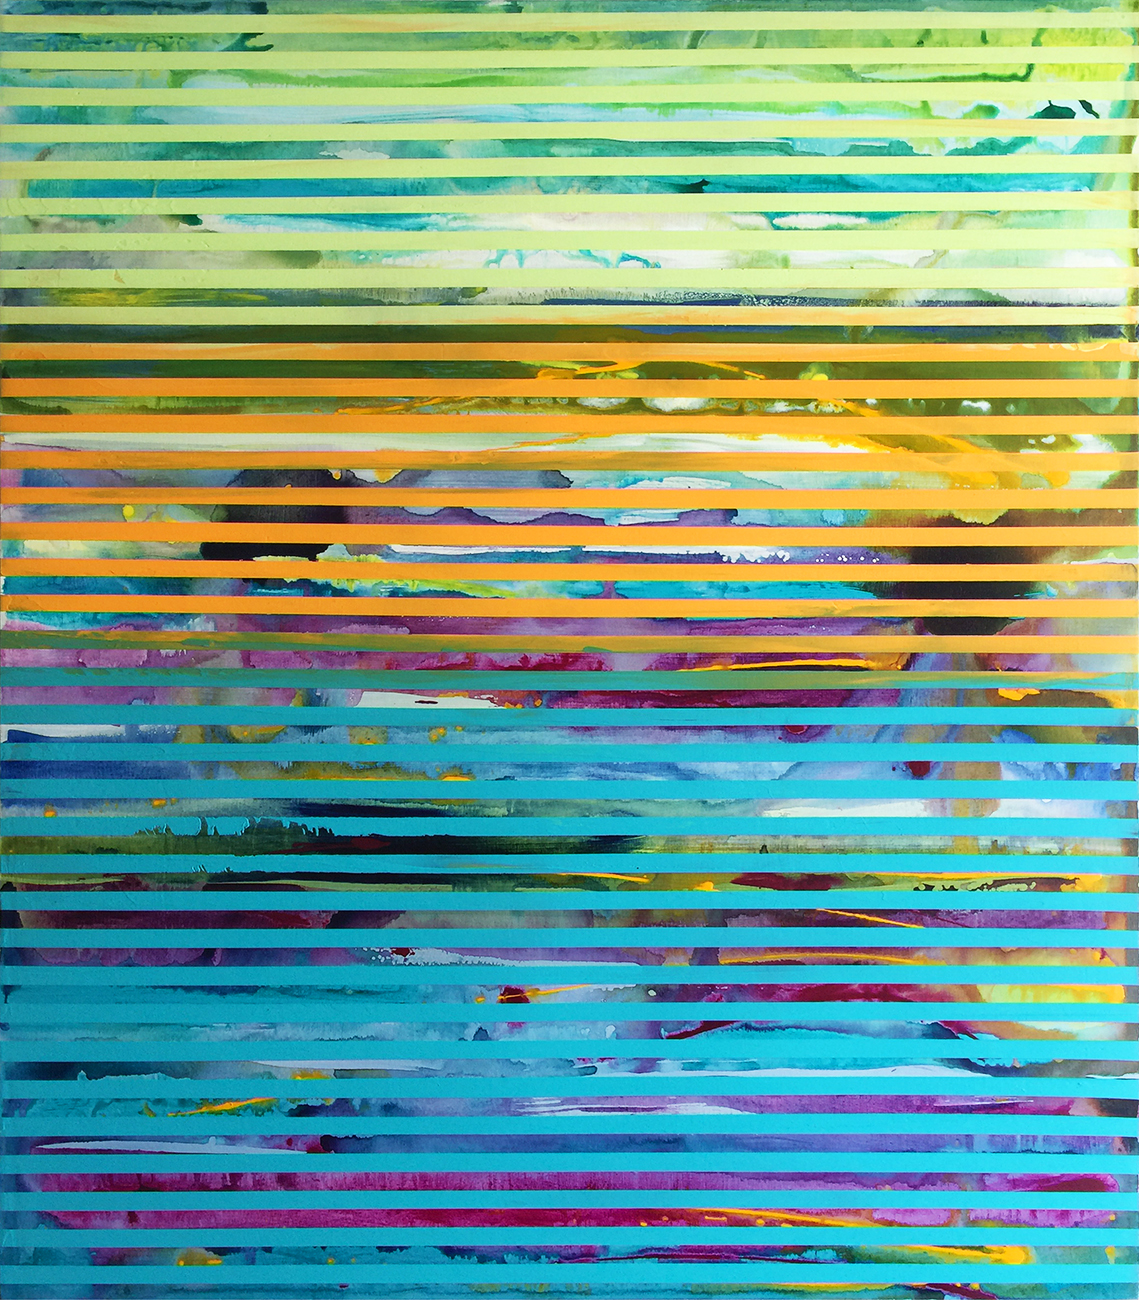 Weaving Landscape No.47_42 x 48 inches_2017